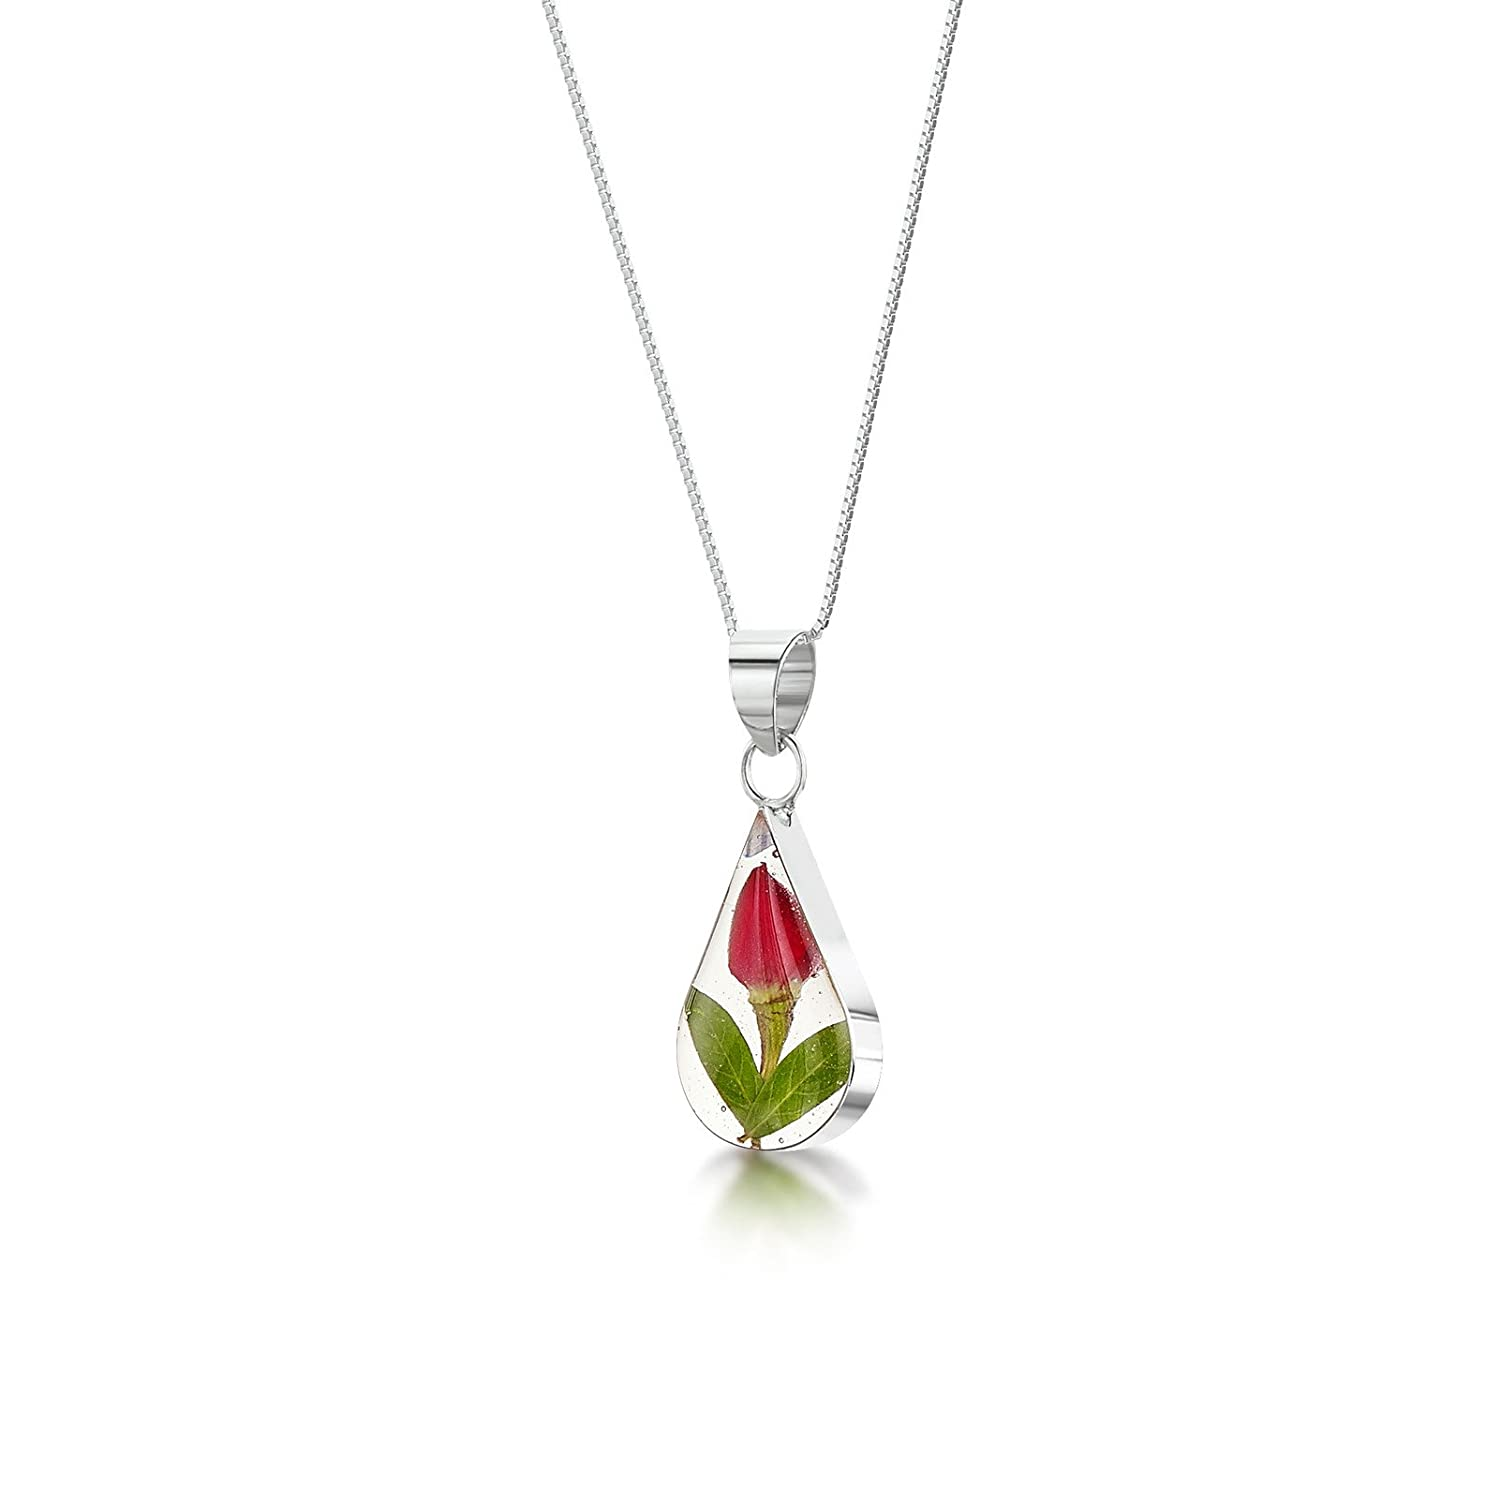 Teardrop Rose Silver Pendant Flower Rose Small Pendant Necklace with 18 Chain